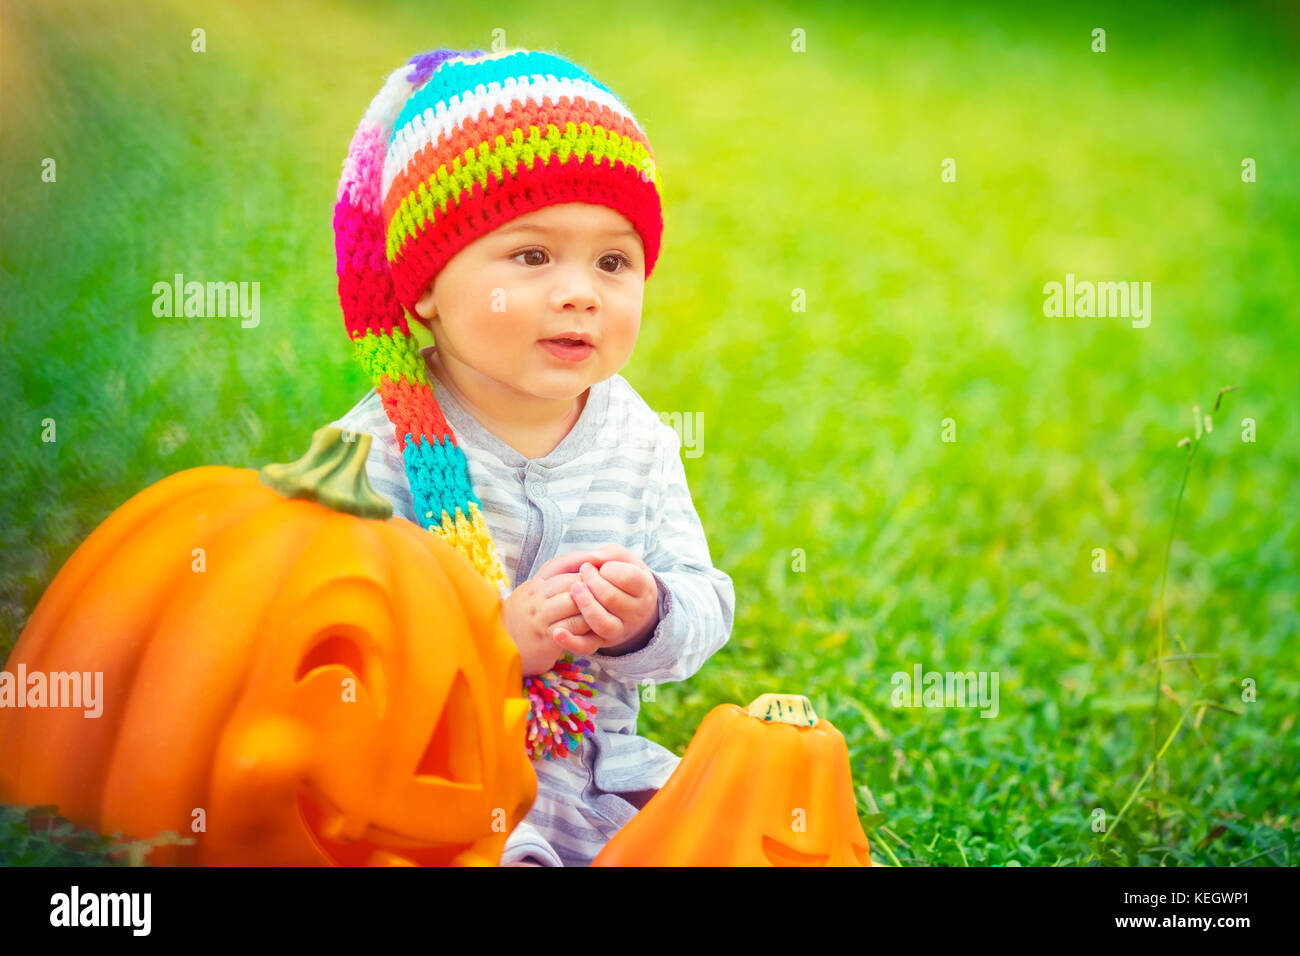 Portrait of a pretty child celebrating Halloween holiday, traditional American holiday with traditional pumpkins - Stock Image